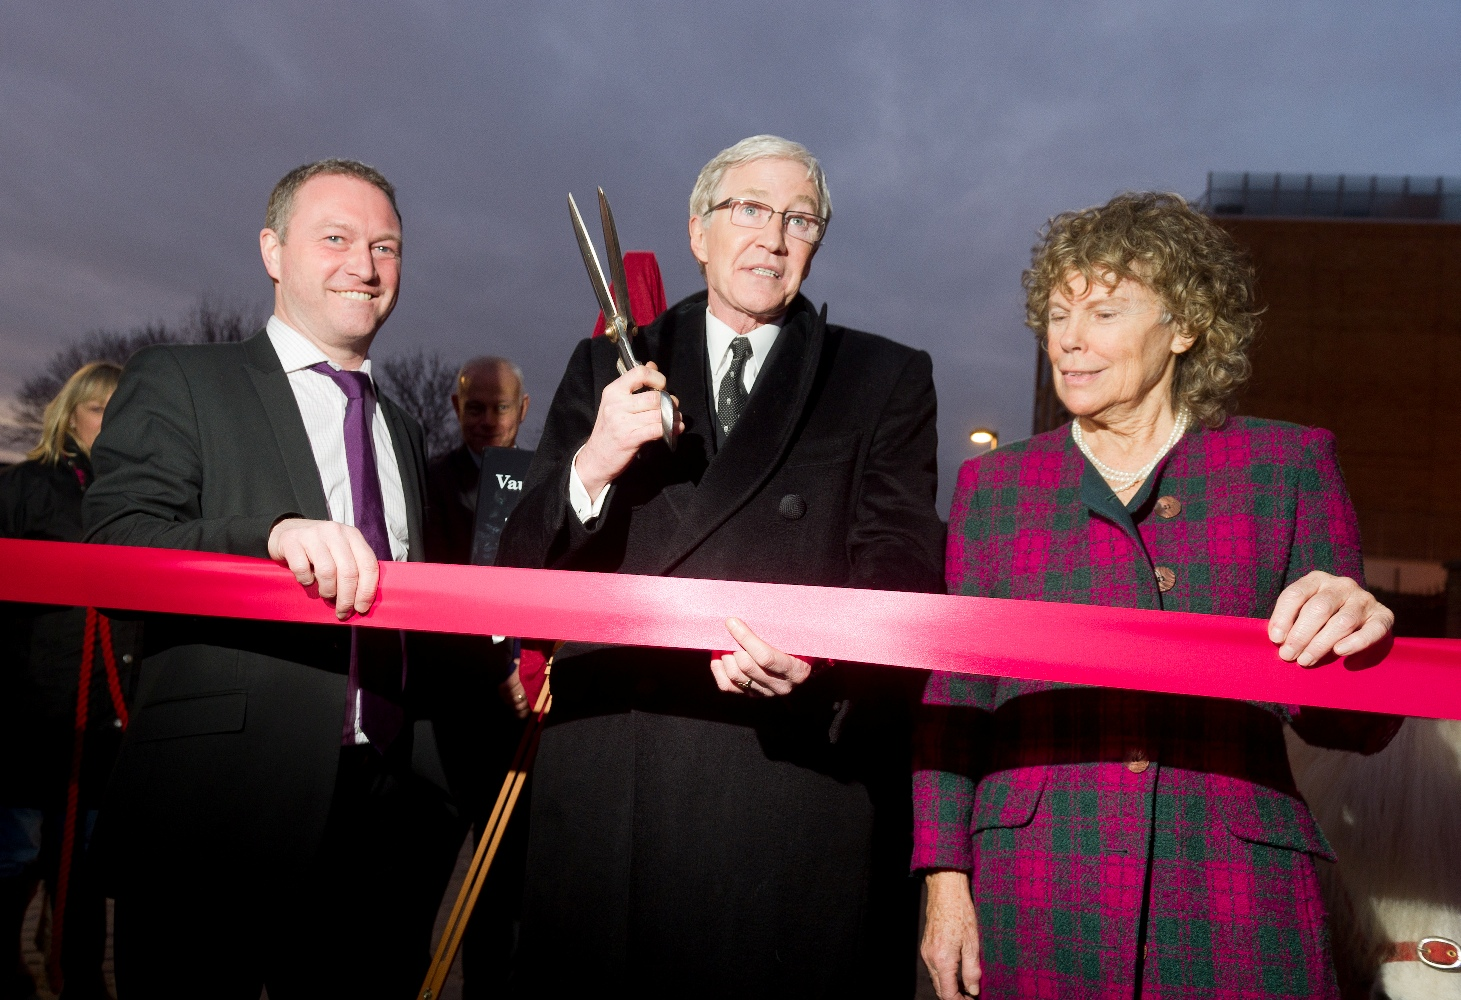 From left to right: Councillor Morgan, Mr Paul O'Grady and MP Kate Hoey at the opening of the new entrance and re-naming ceremony on 16 February 2012